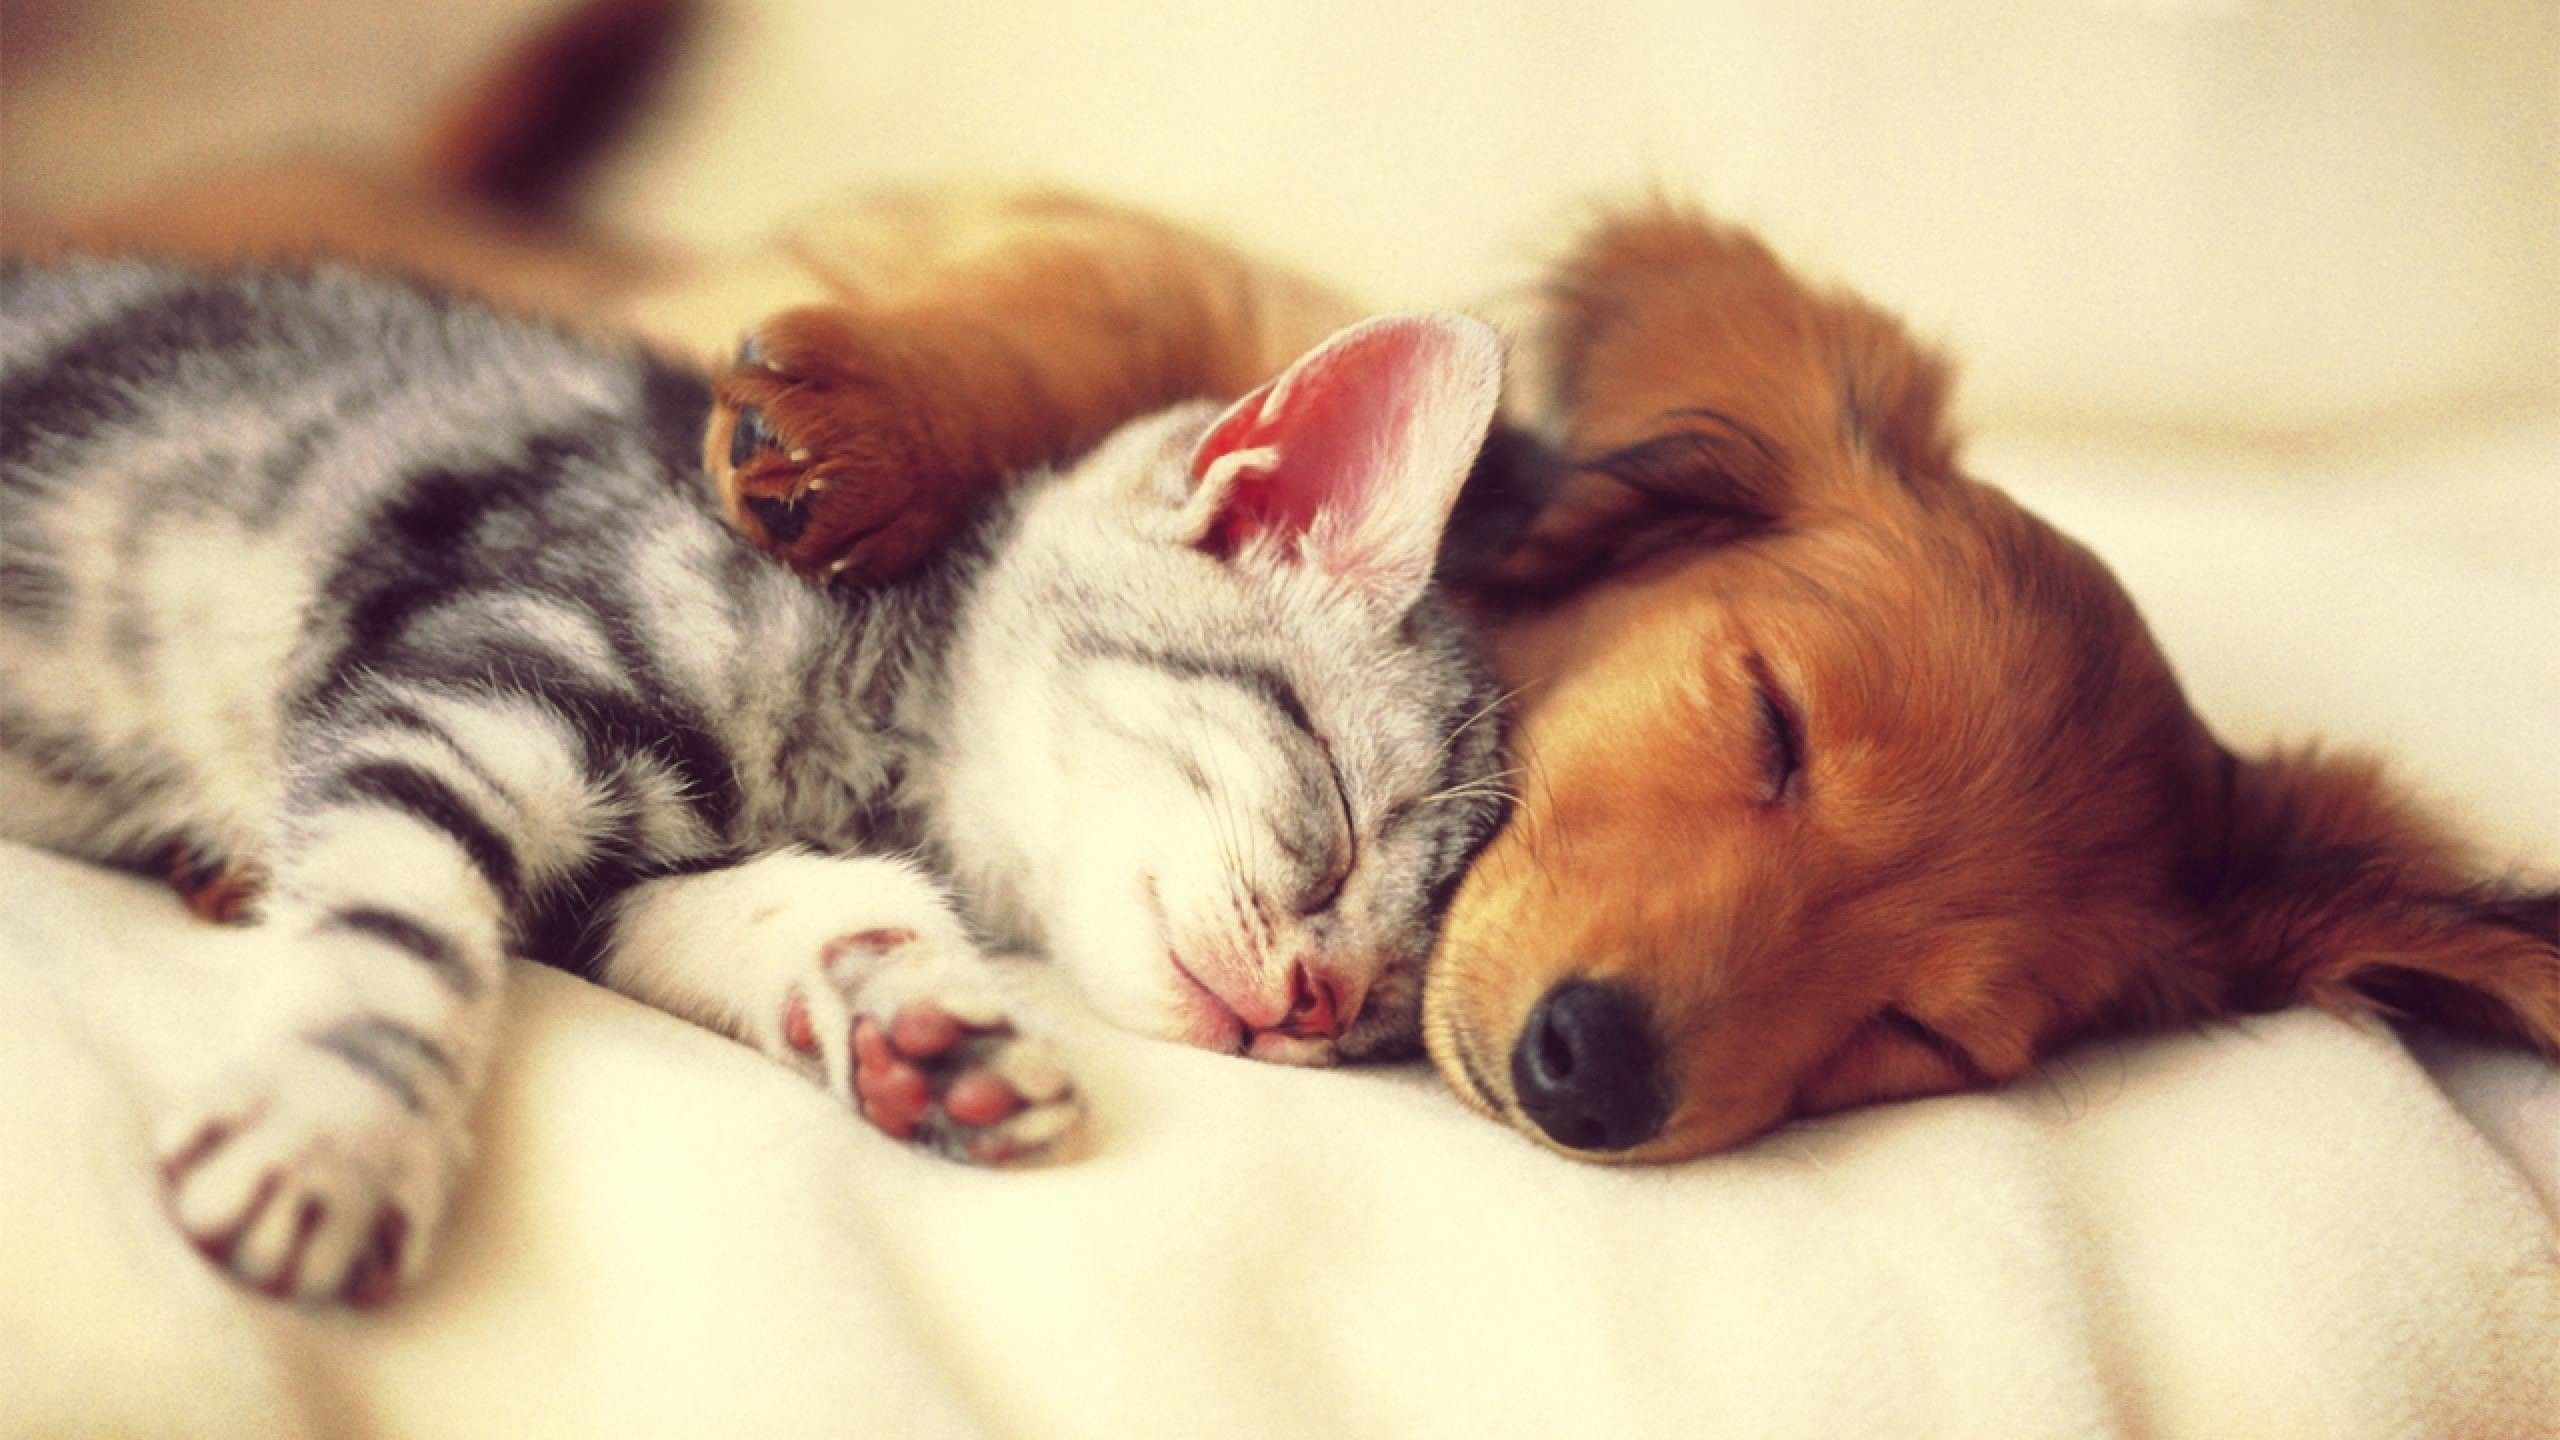 Cute Cats And Dogs Wallpapers Top Free Cute Cats And Dogs Backgrounds Wallpaperaccess